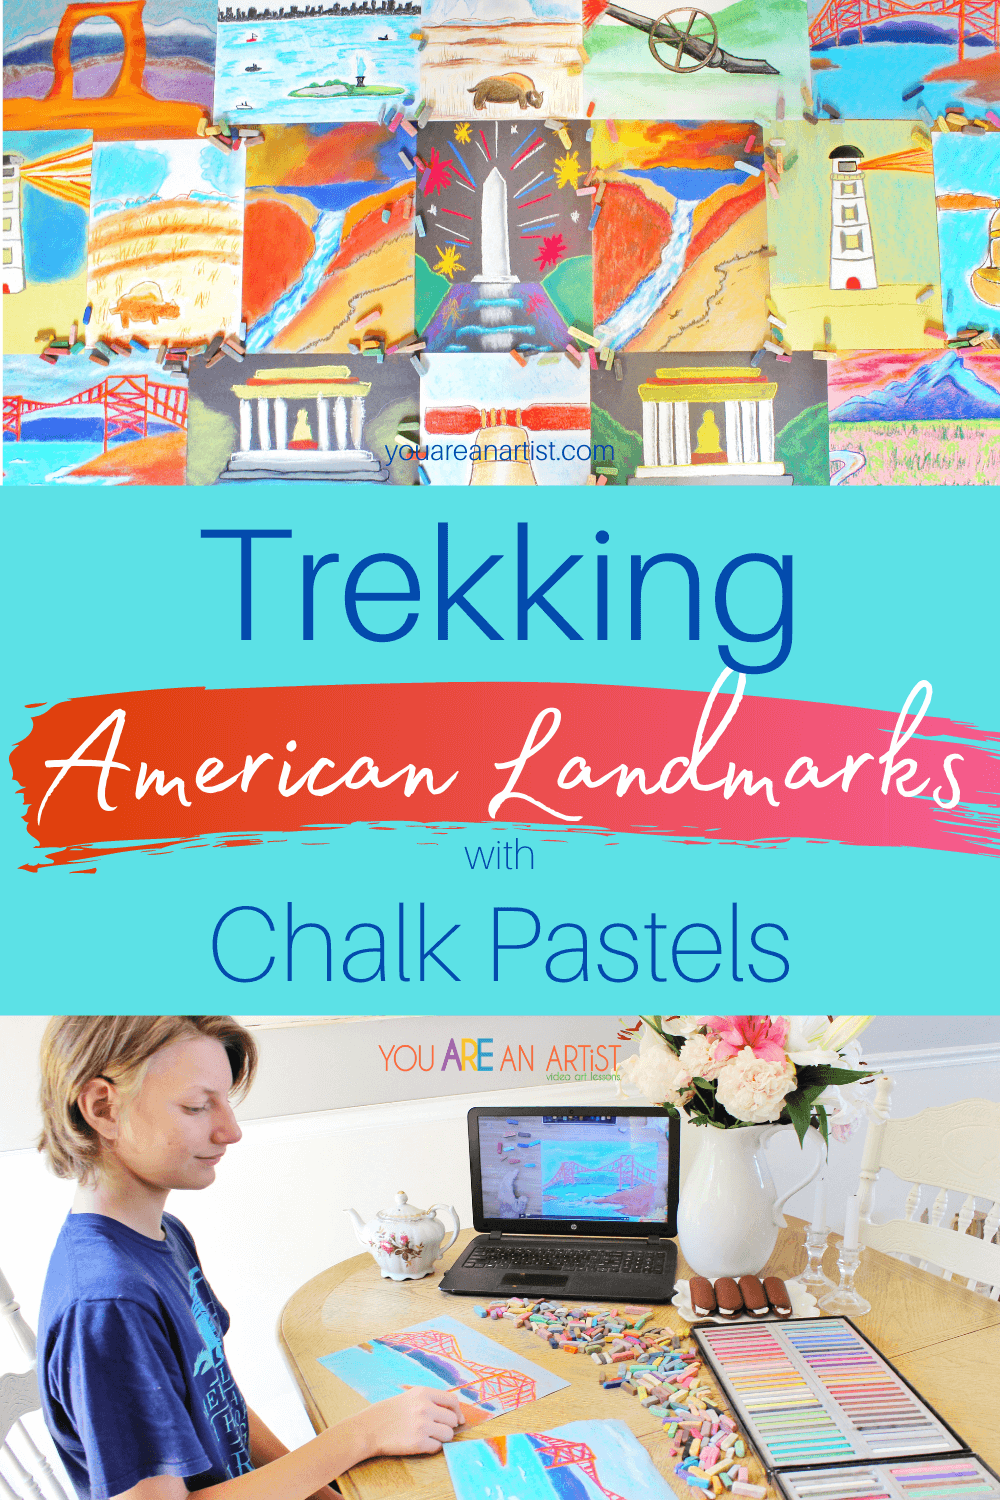 Trekking American Landmarks with Chalk Pastels: Do you dream of trekking America's landmarks with your kids? Let Nana take you and your children on a trip around our great United States without leaving the comforts of your home. Trekking American landmarks with chalk pastels are as easy as walking to your kitchen table, setting out your chalk pastels, and a pack of construction paper. Nana will do the rest. #YouAREAnArtist #chalkpastels #Americanlandmarks #Americanlandmarksartlessons #TrekkingAmericanlandmarks #TrekkingAmericanlandmarkswithchalkpastels #Americanlandmarksvideoartlessons #famousAmericanlandmarks #USlandmarkactivity